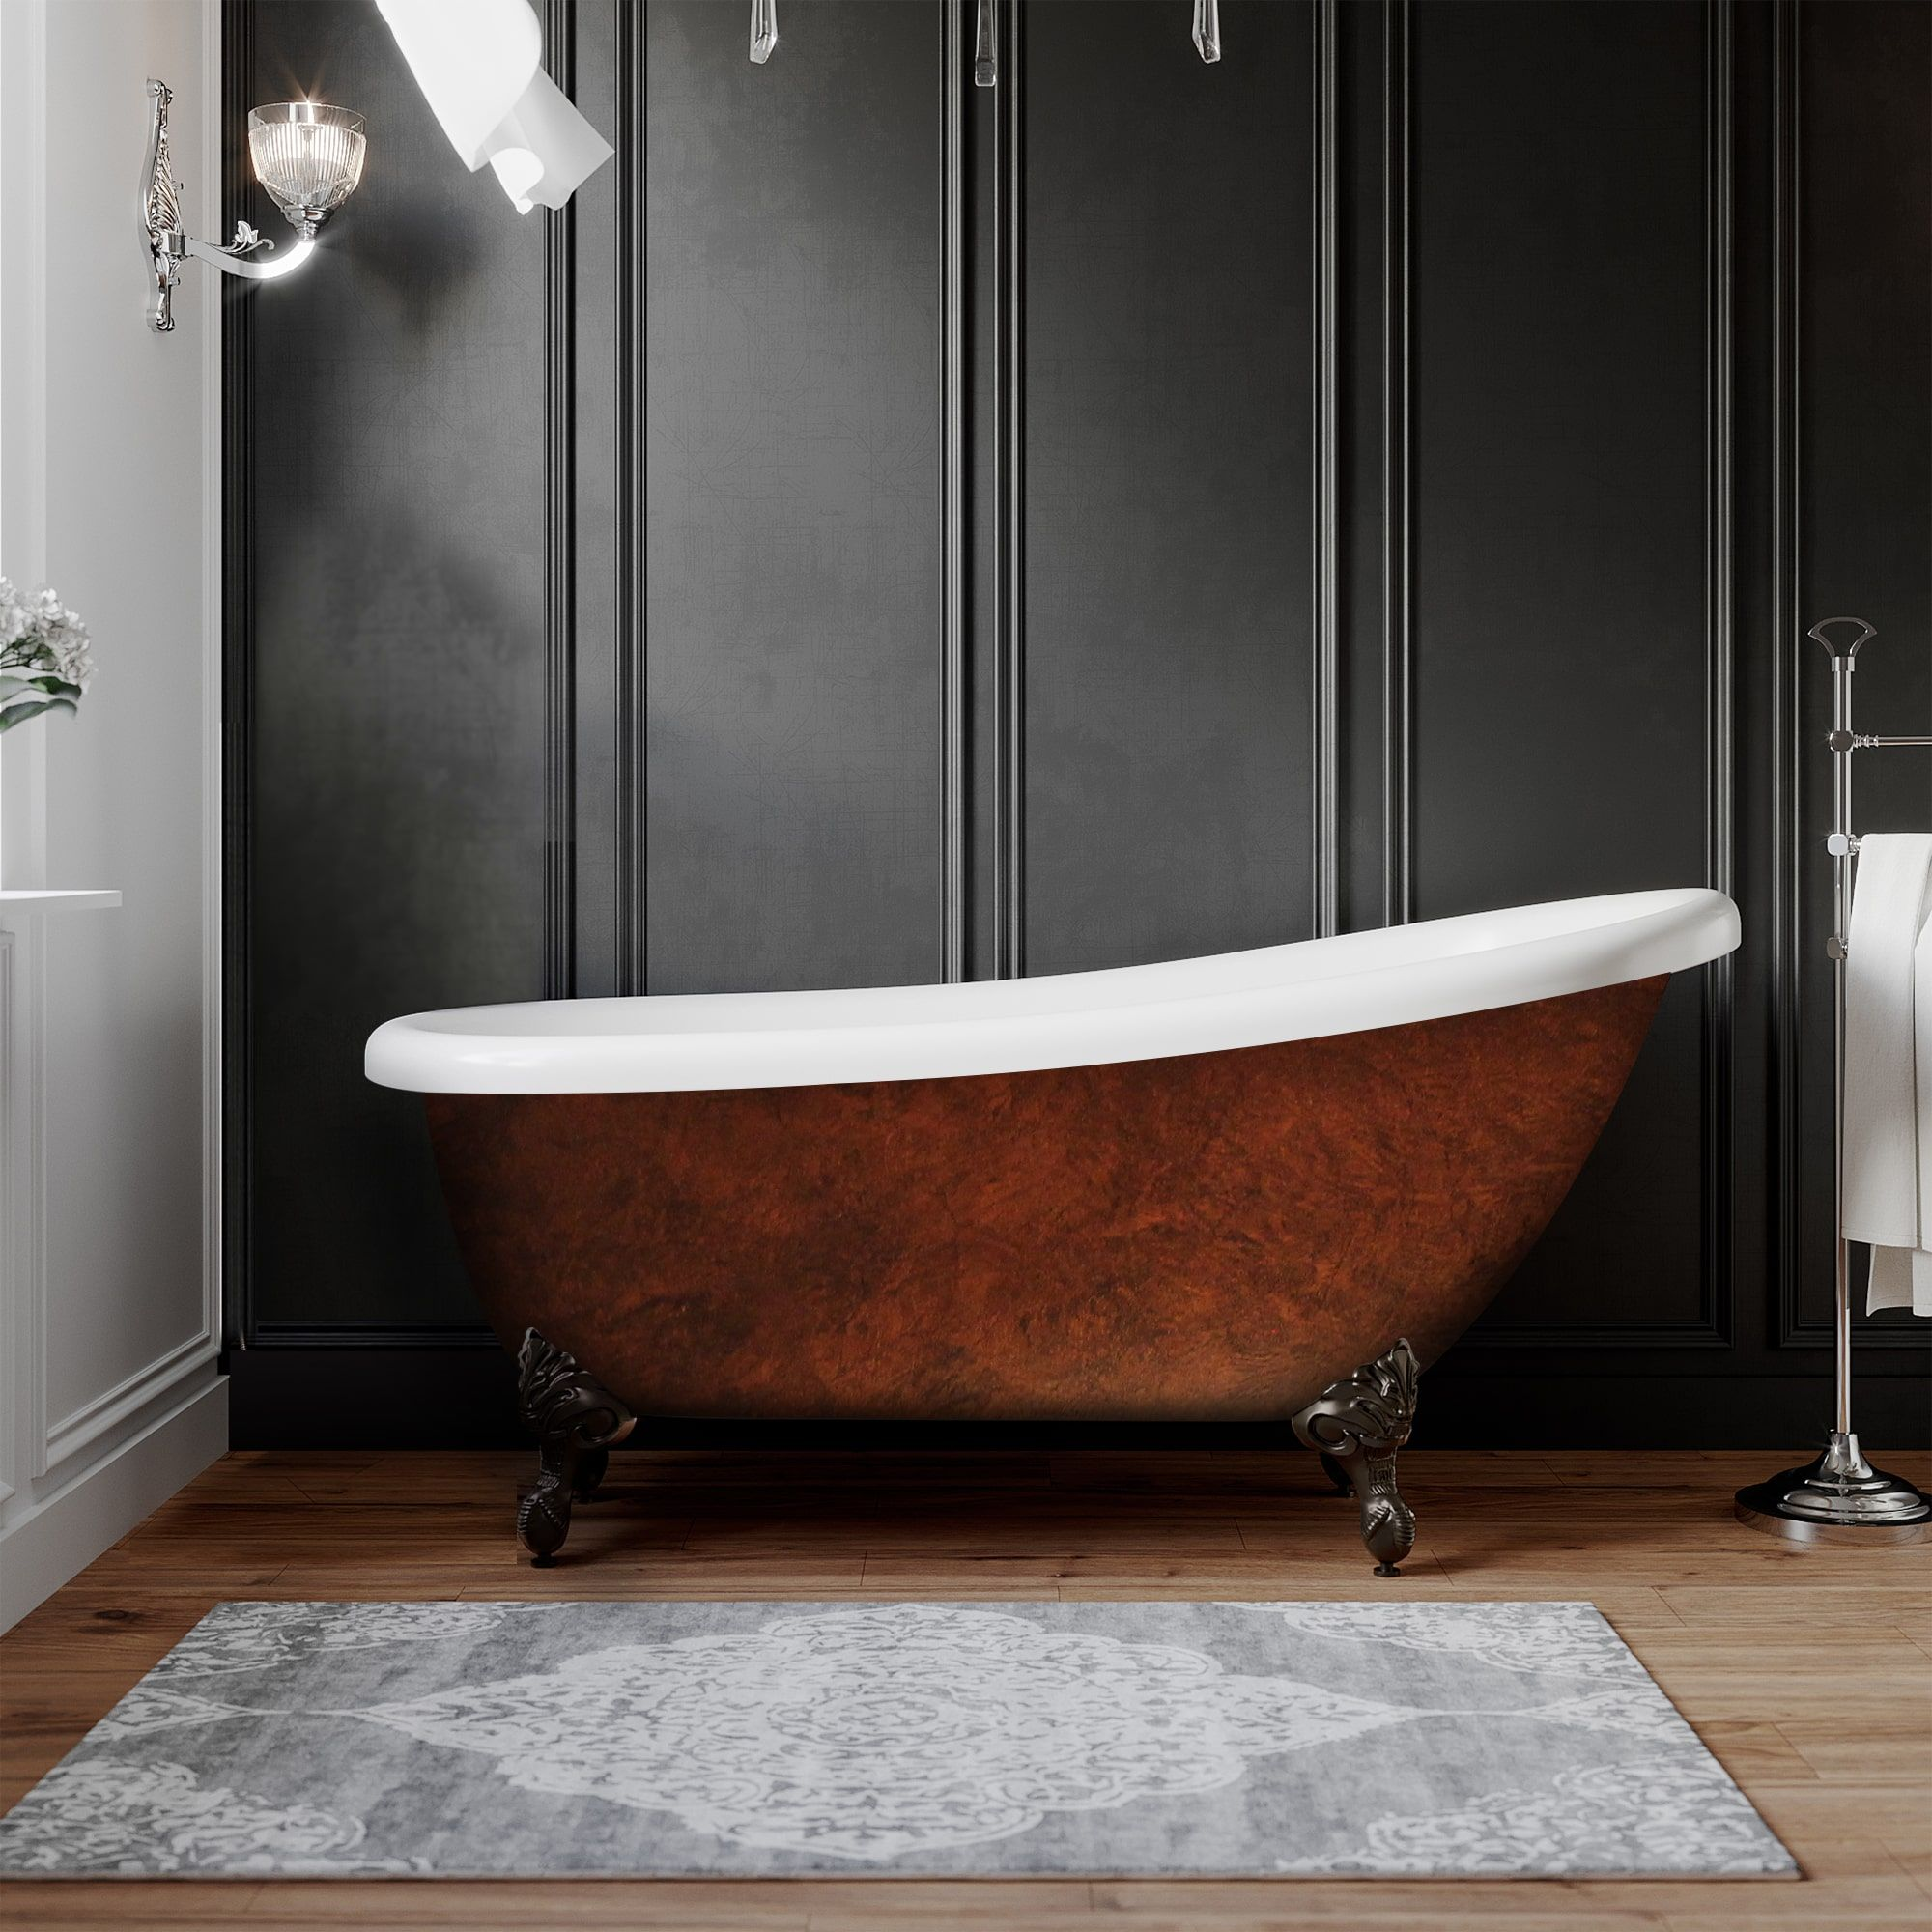 61 inch acrylic clawfoot slipper painted tub copper bronze maries